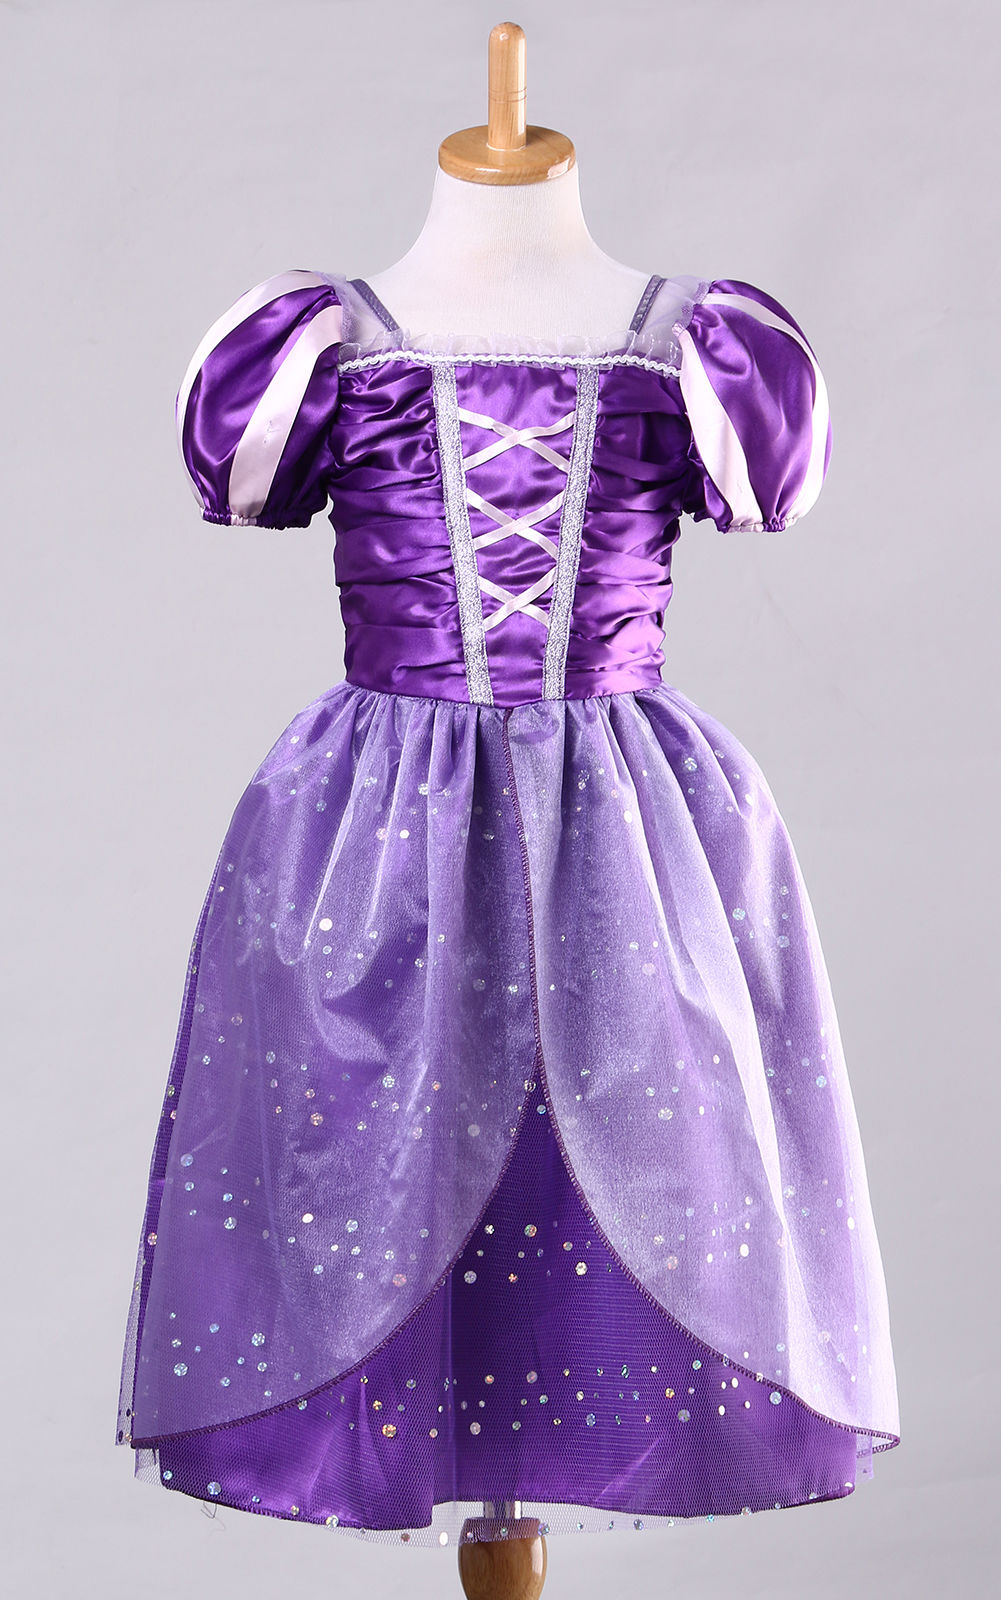 Rapunzel Kids Girls Princess Halloween Party Dress Tangled Cosplay Outfits Costume 3 To 10 Years ems dhl free shipping toddler s little girl s tull dress princess birthday party masquerade rapunzel cosplay halloween wear